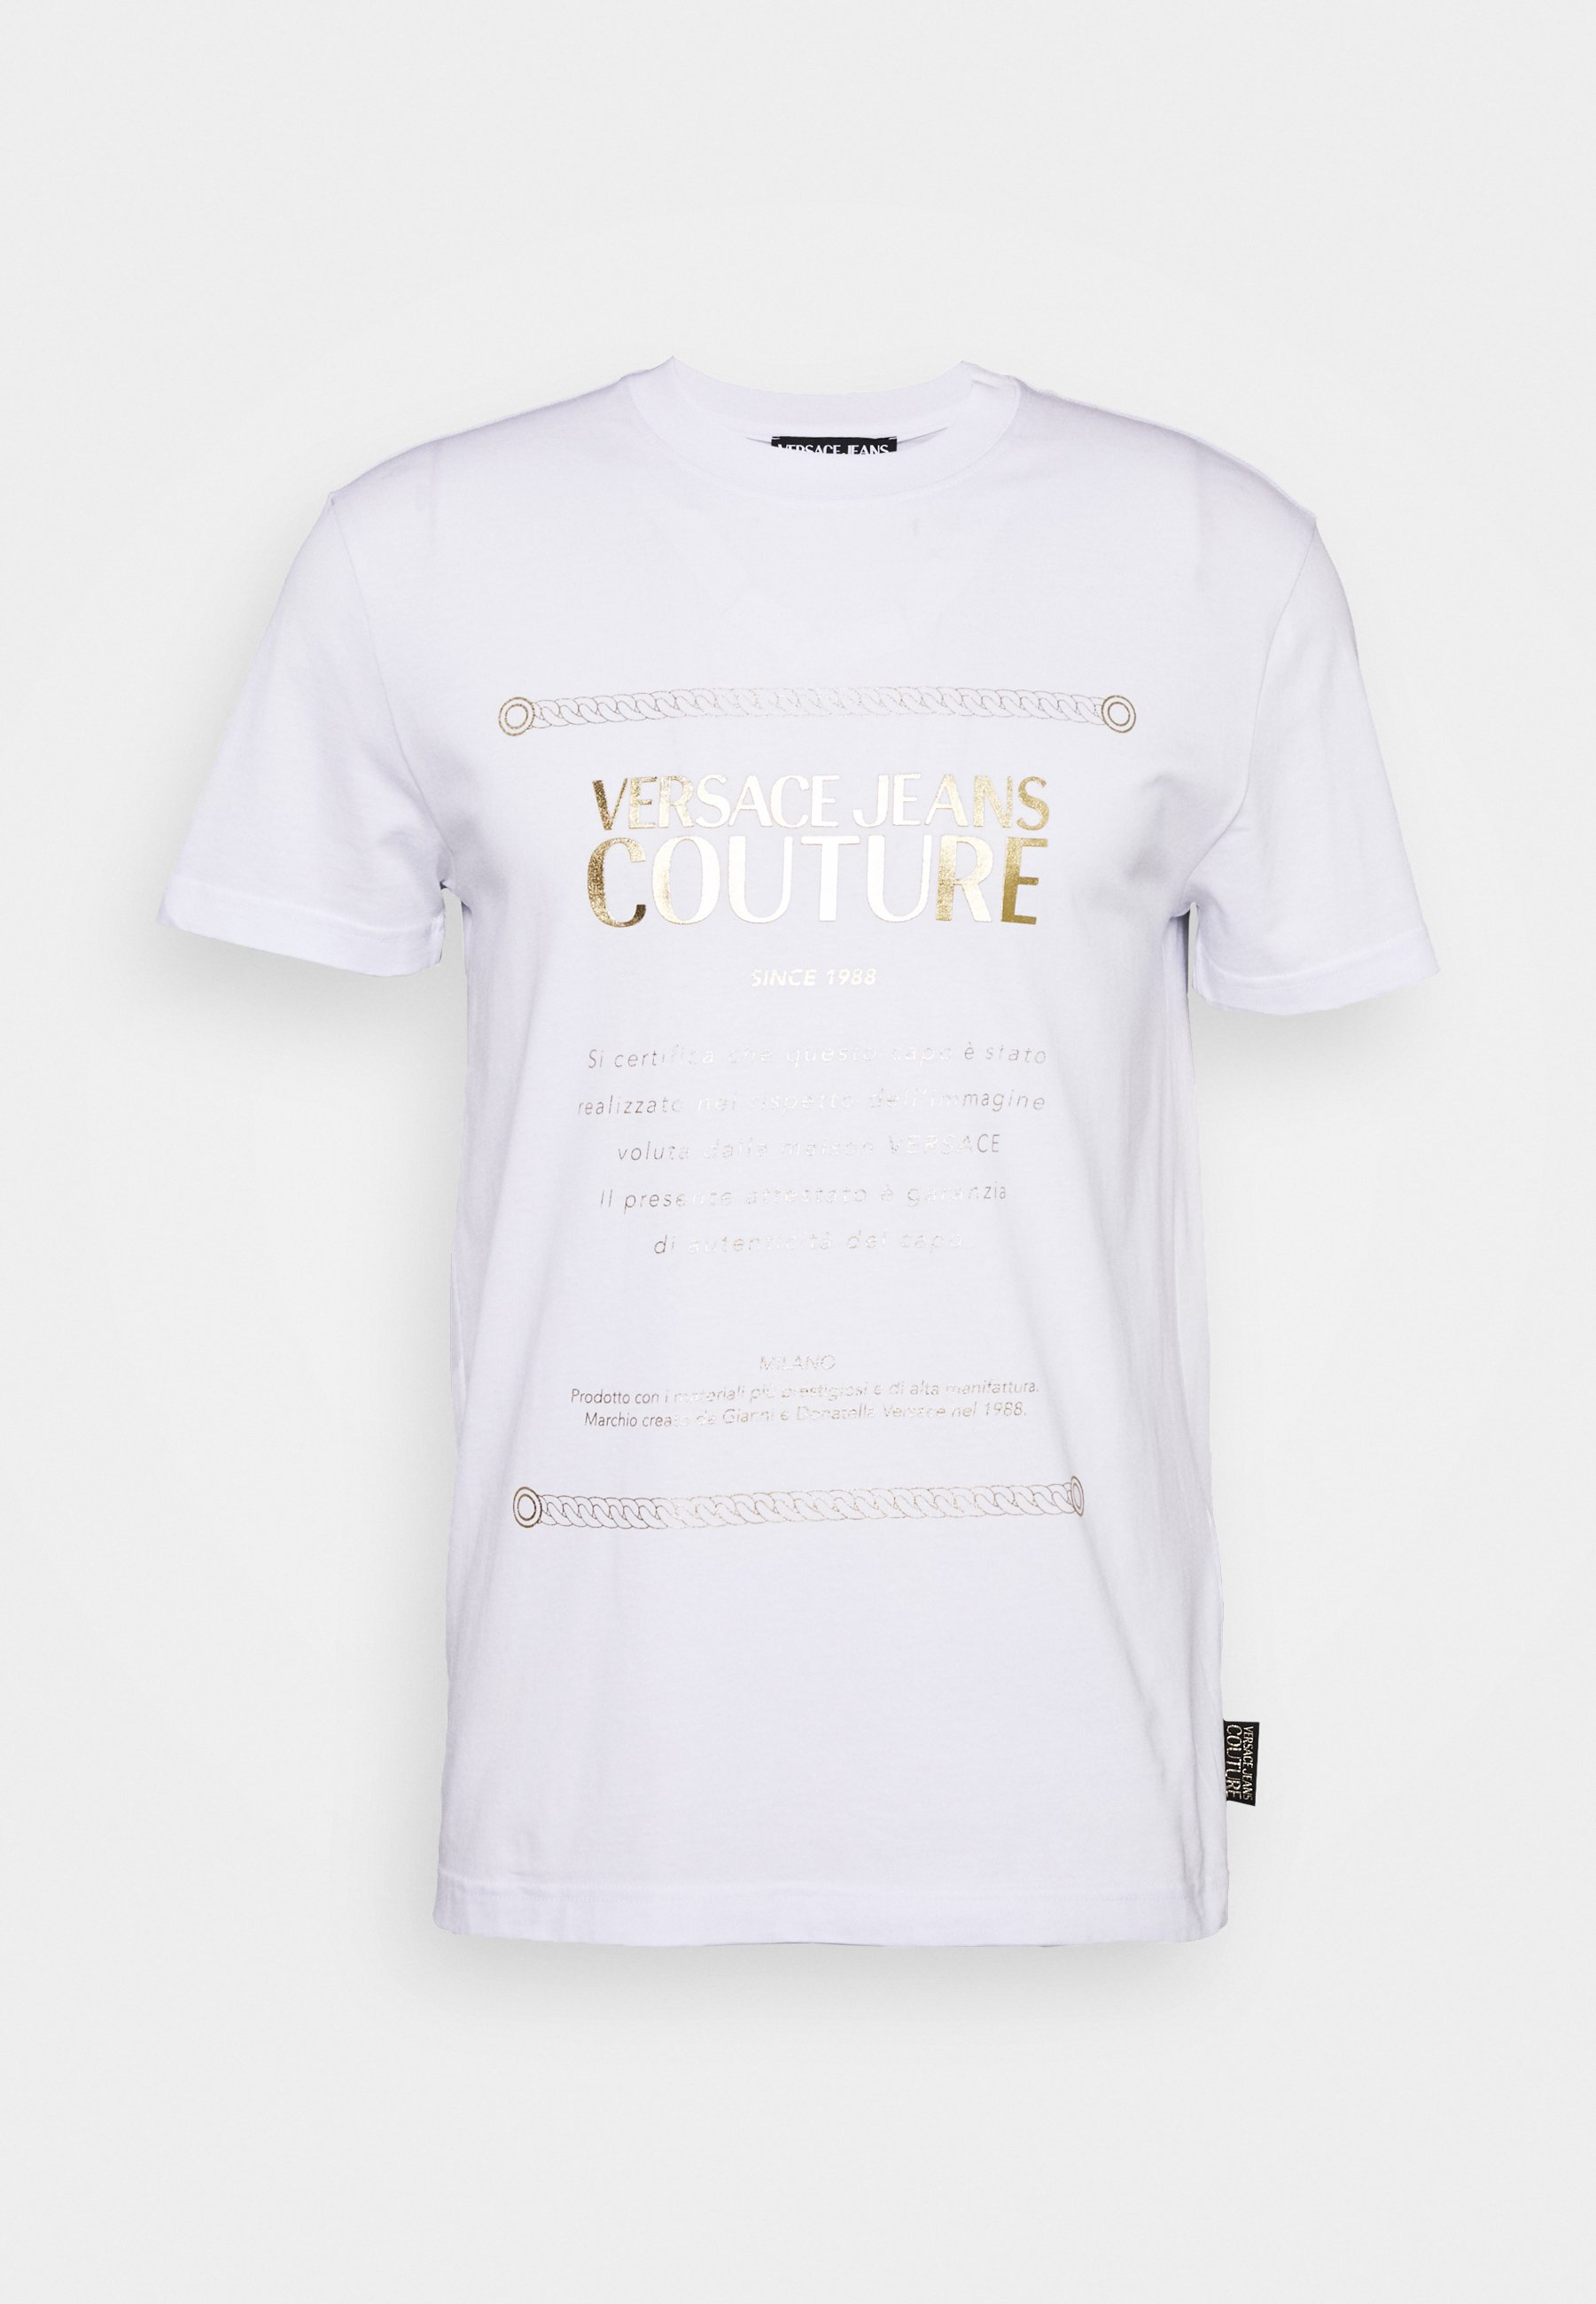 Versace Jeans Couture Mouse - T-shirt Con Stampa Balck kaYzH